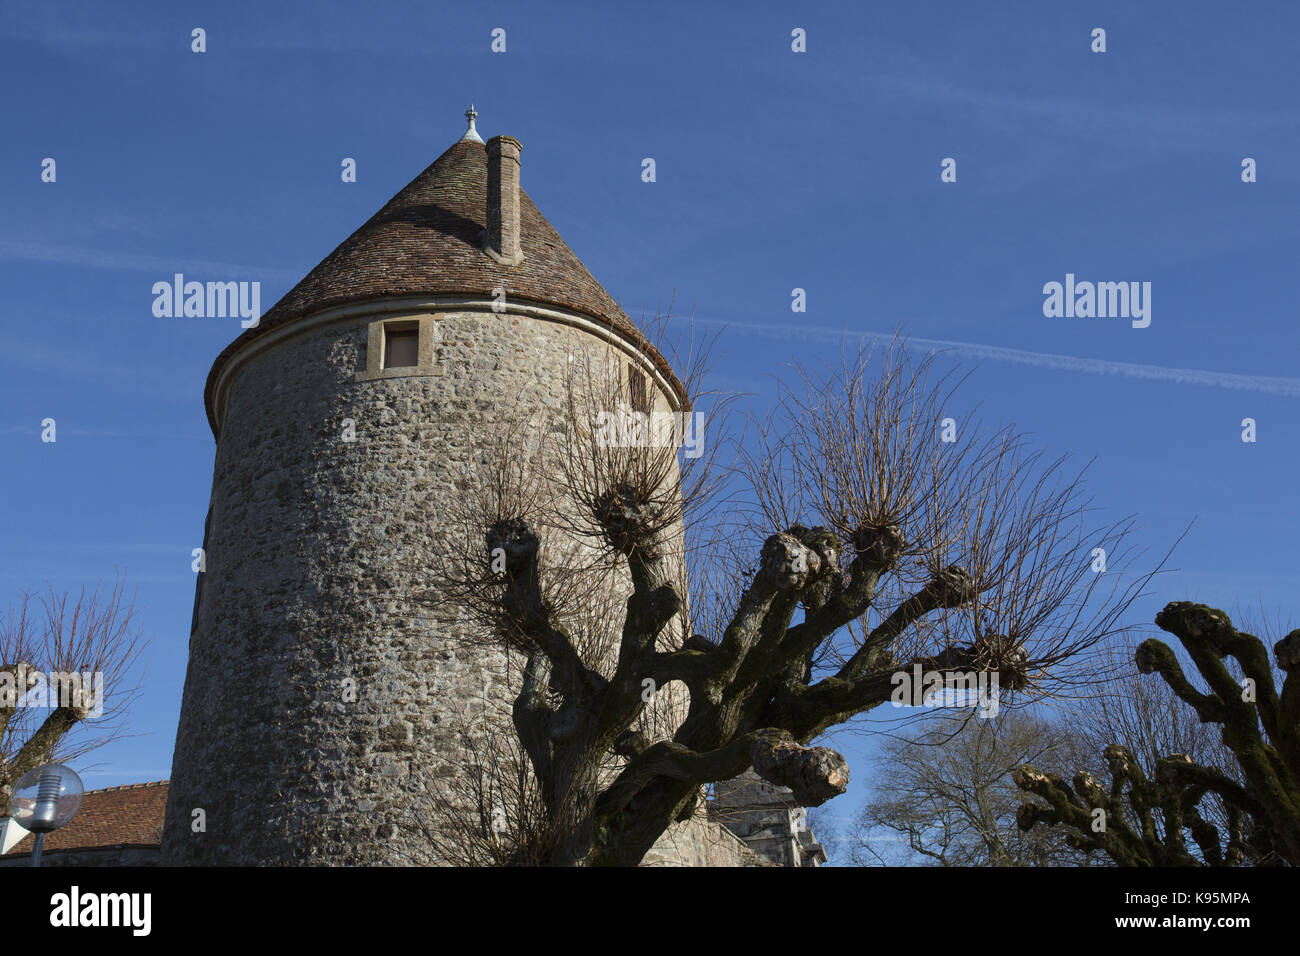 Medieval round tower, part of the fortifications in Avallon, Yonne, Burgundy, France - Stock Image